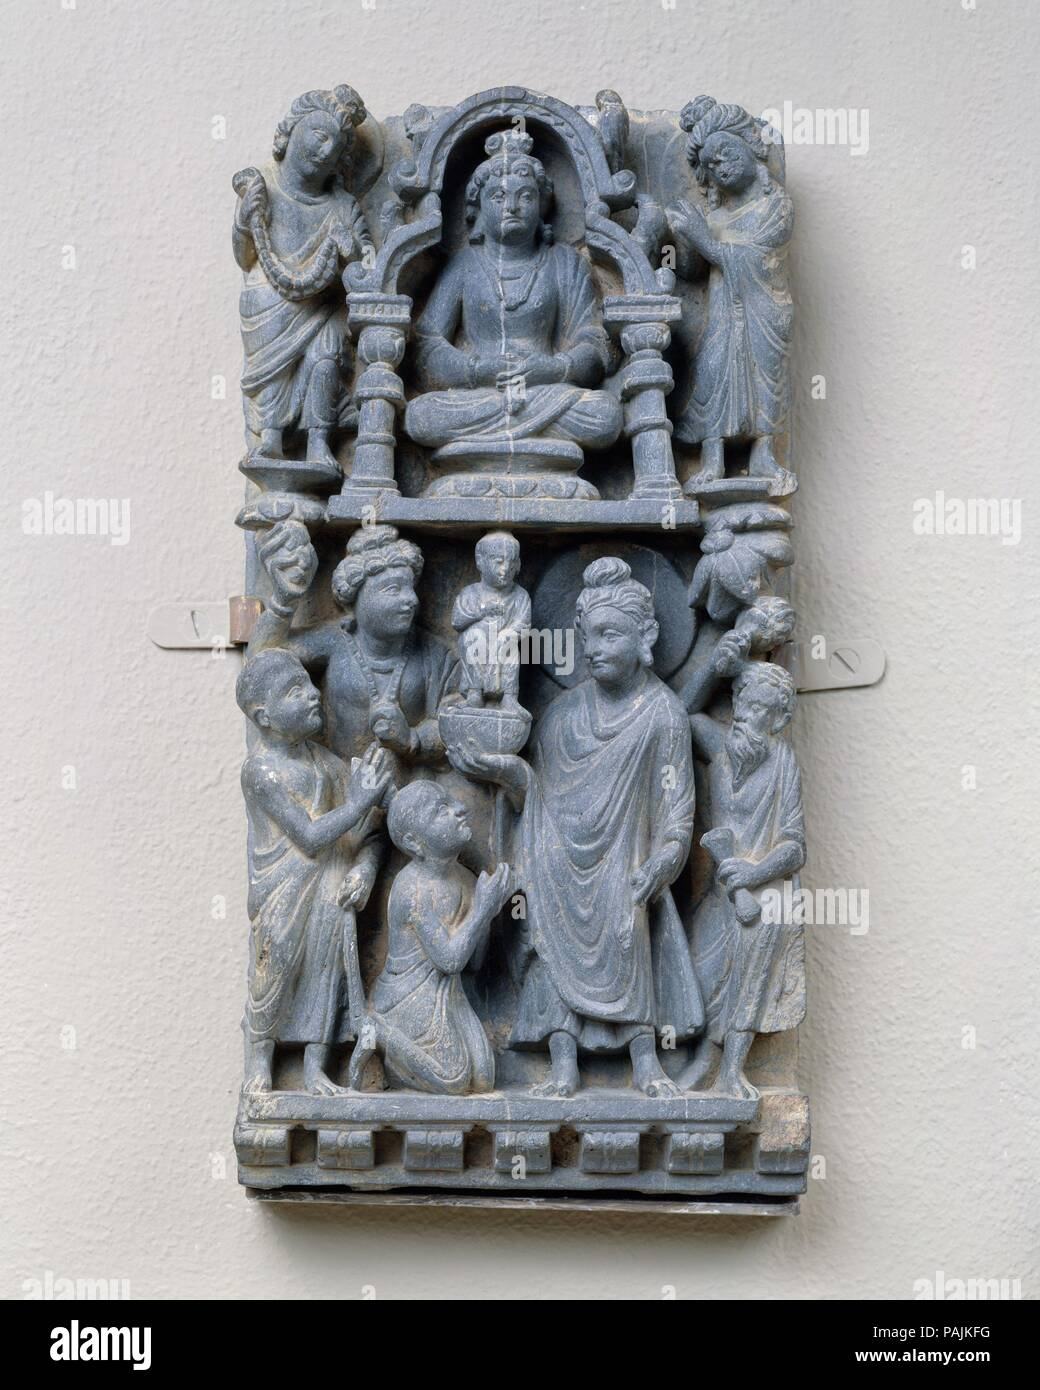 Relief Panel:  Presentation of a Statue. Culture: Pakistan (ancient region of Gandhara). Dimensions: 11 7/8 x 6 in. (30.2 x 15.2 cm). Date: 3rd-5th century. Museum: Metropolitan Museum of Art, New York, USA. Stock Photo